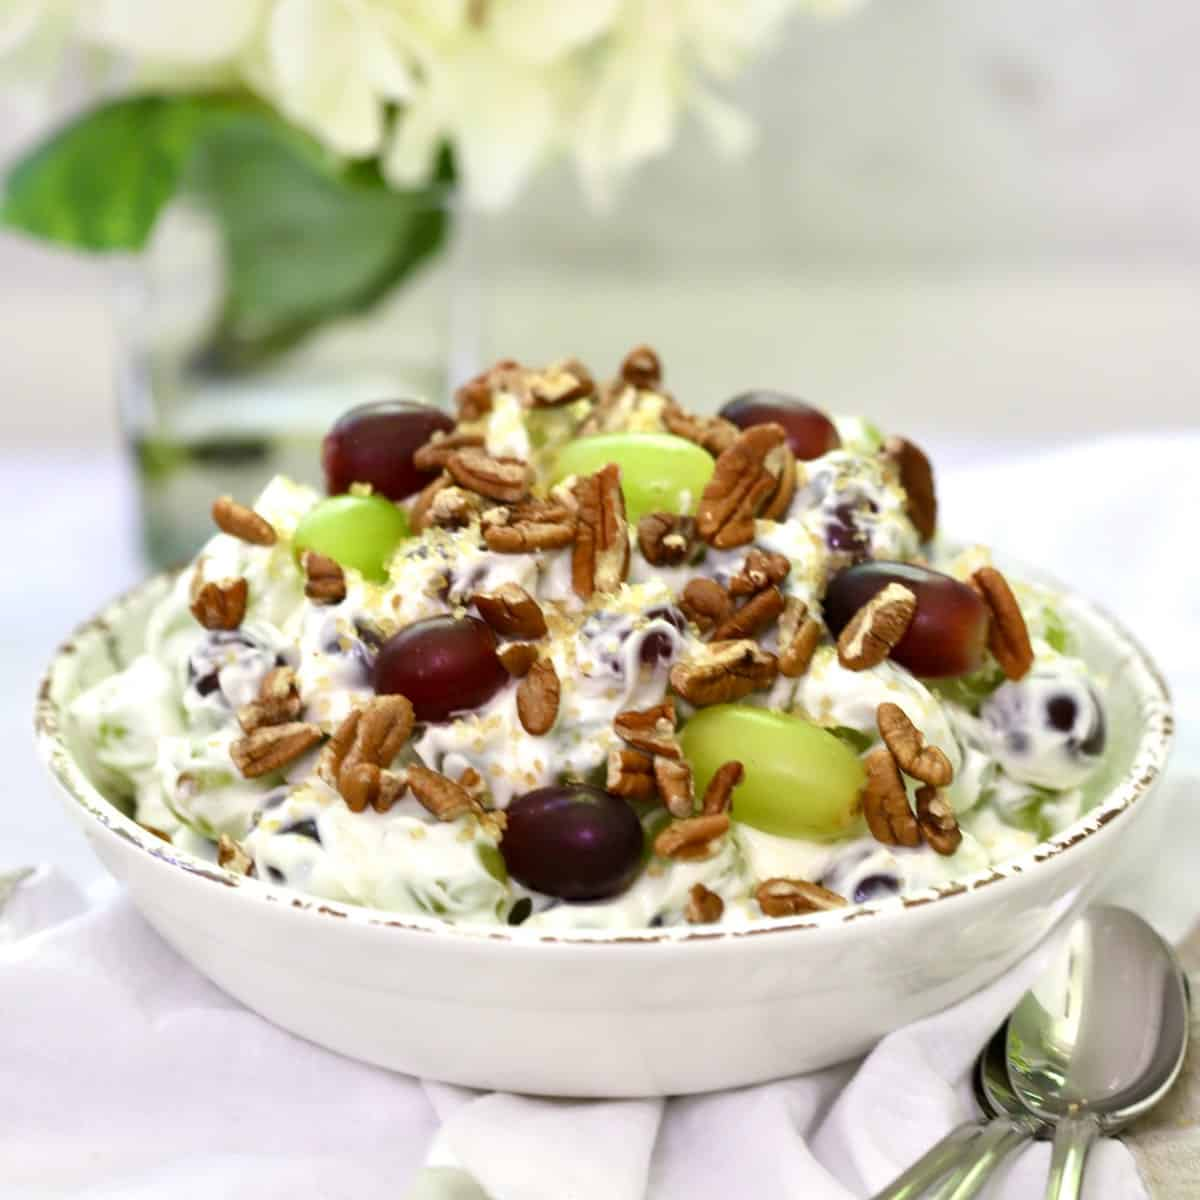 Easy Grape Salad with Cream Cheese in a white bowl garnished with pecans and with hydrangeas in the background